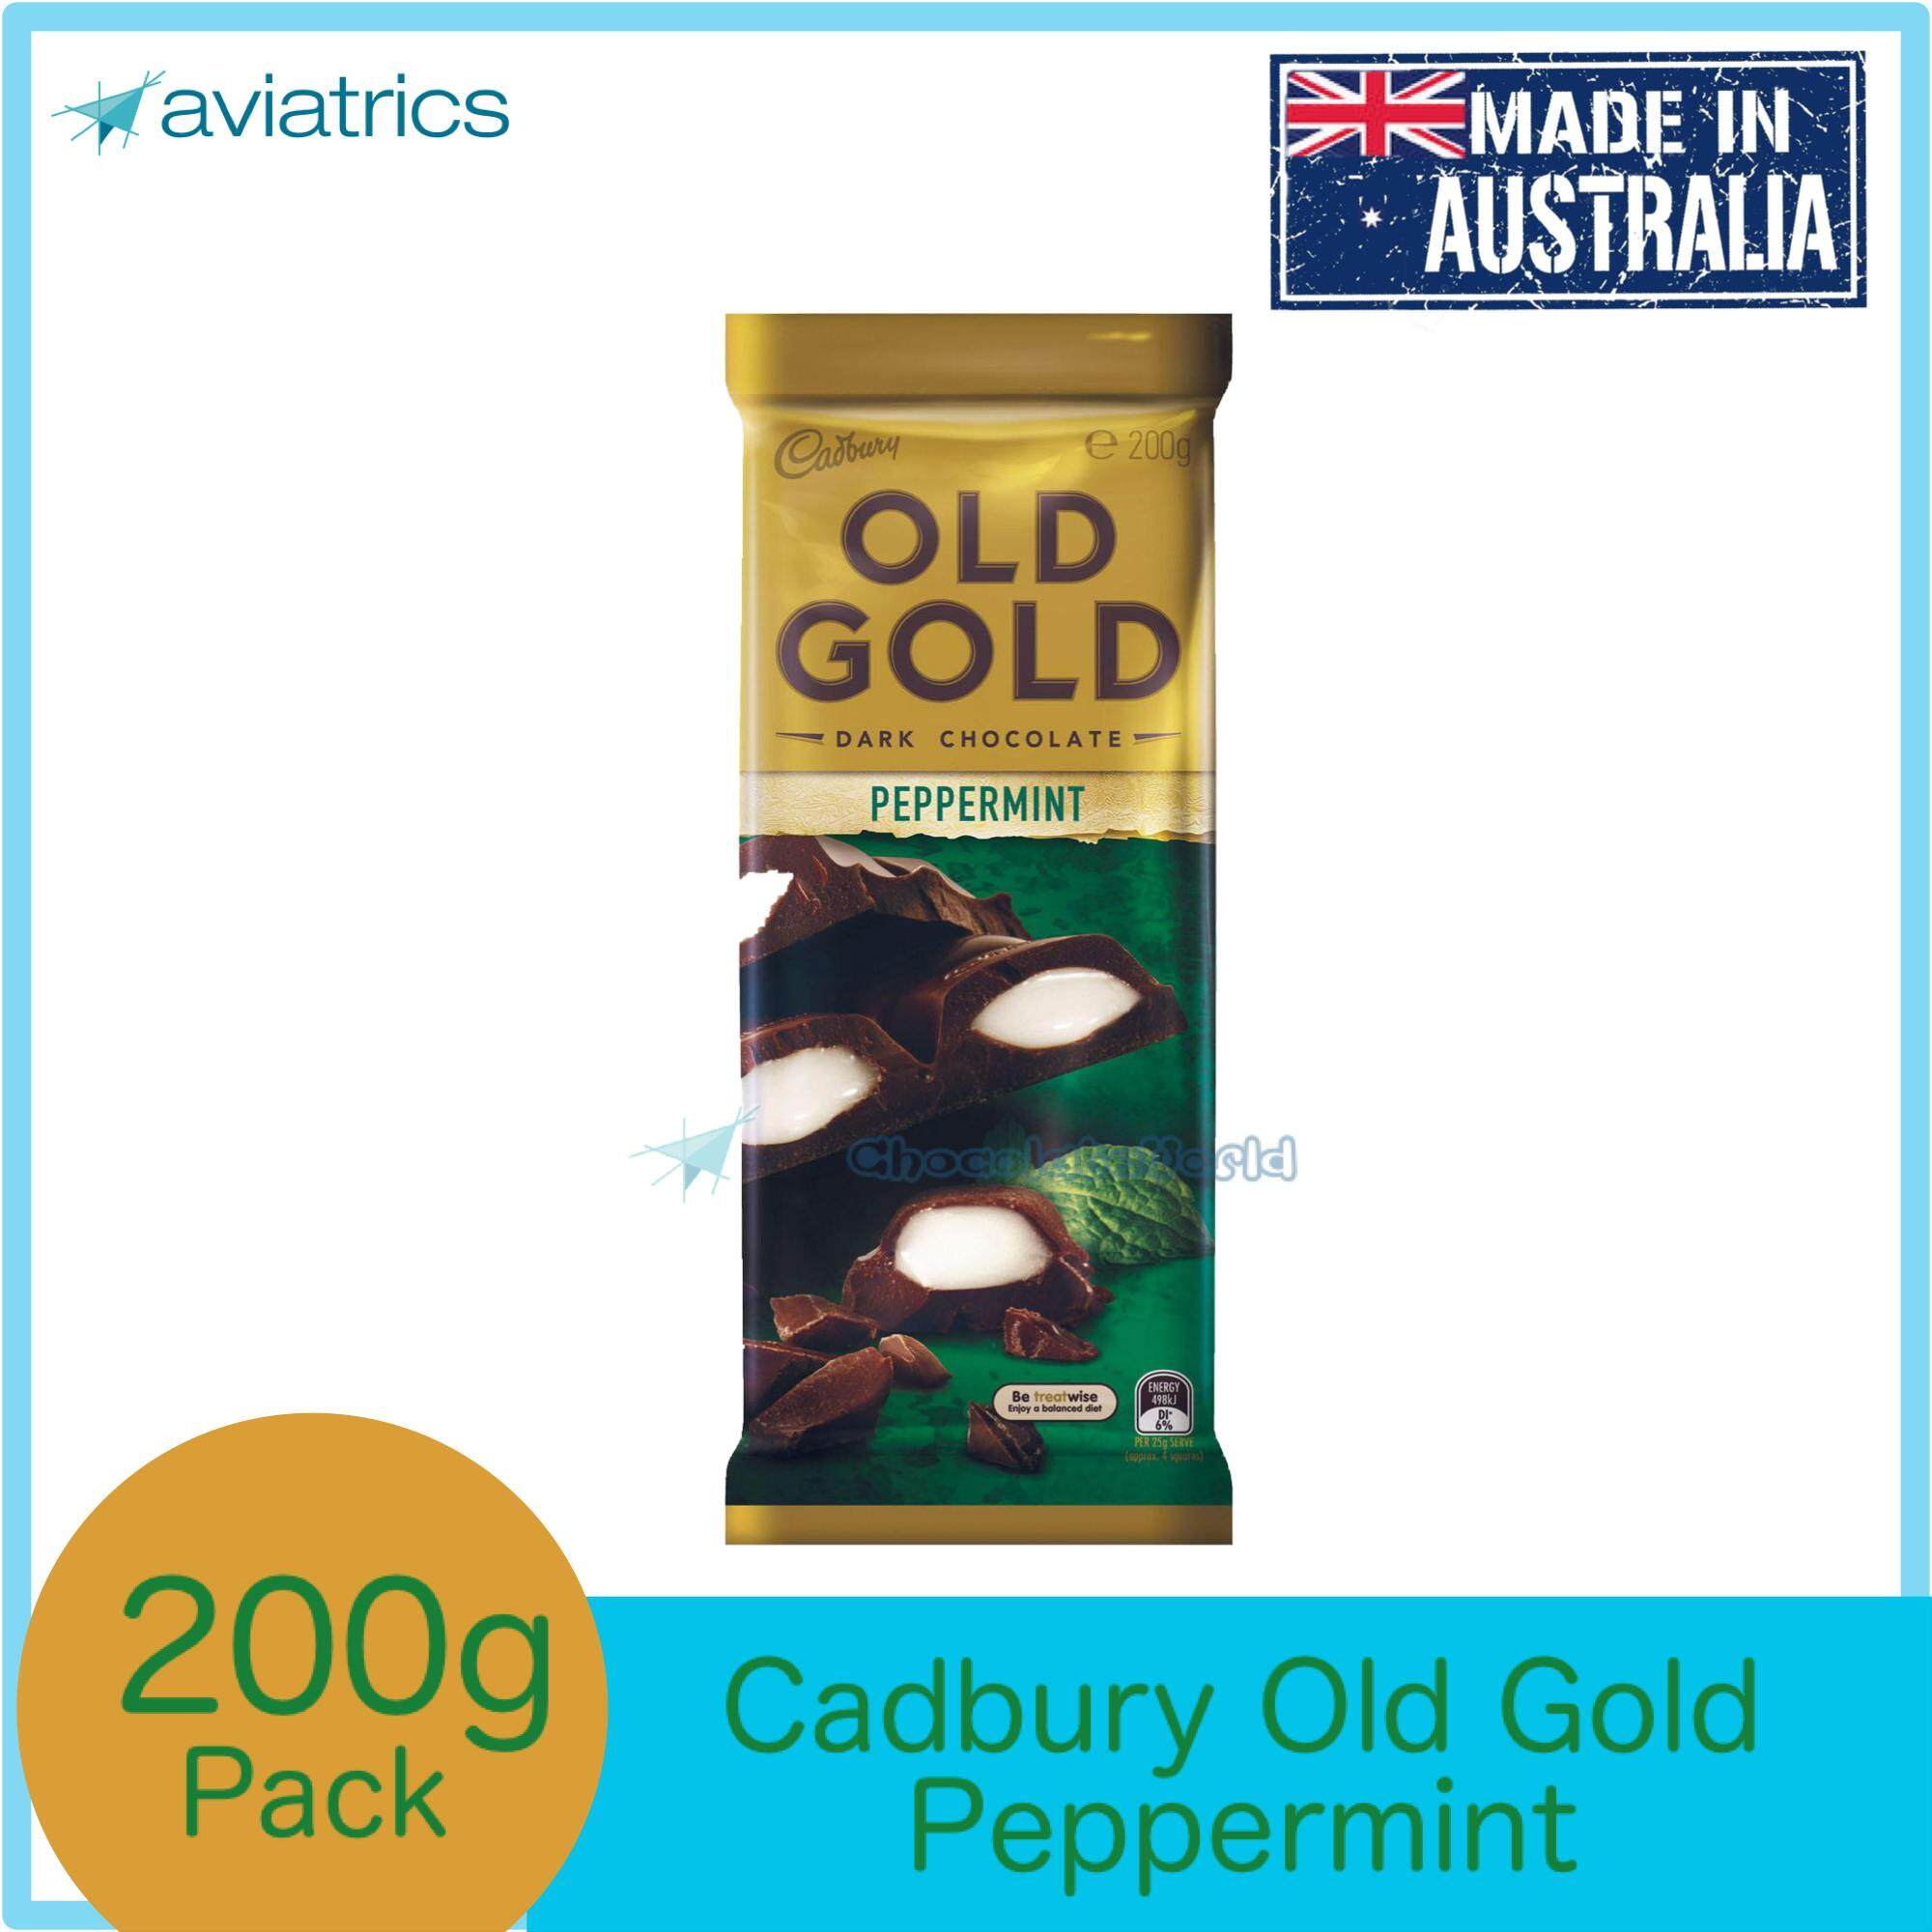 Cadbury Old Gold Peppermint 180g(Made in Australia)